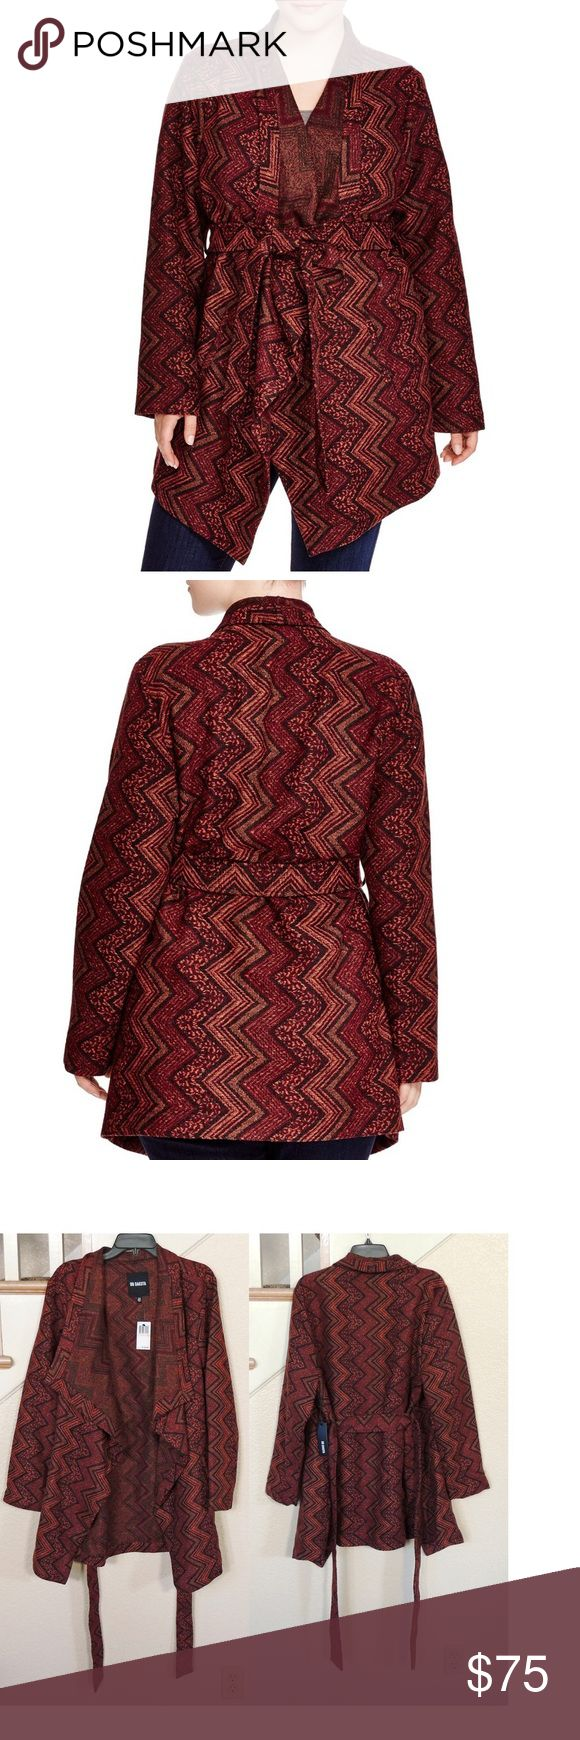 """Maroon Chevron Wrap Tie Jacket ** Reasonable Offers Welcome - No Trades**  Size 2x = 18w - 20w --34"""" length - 65% polyester, 32% acrylic, 3% wool - Rust, maroon and black hued chevron printed jacket with oversized collar and tie wrap closure. Equipped with double side pockets and asymmetrical hemline. BB Dakota Jackets & Coats"""